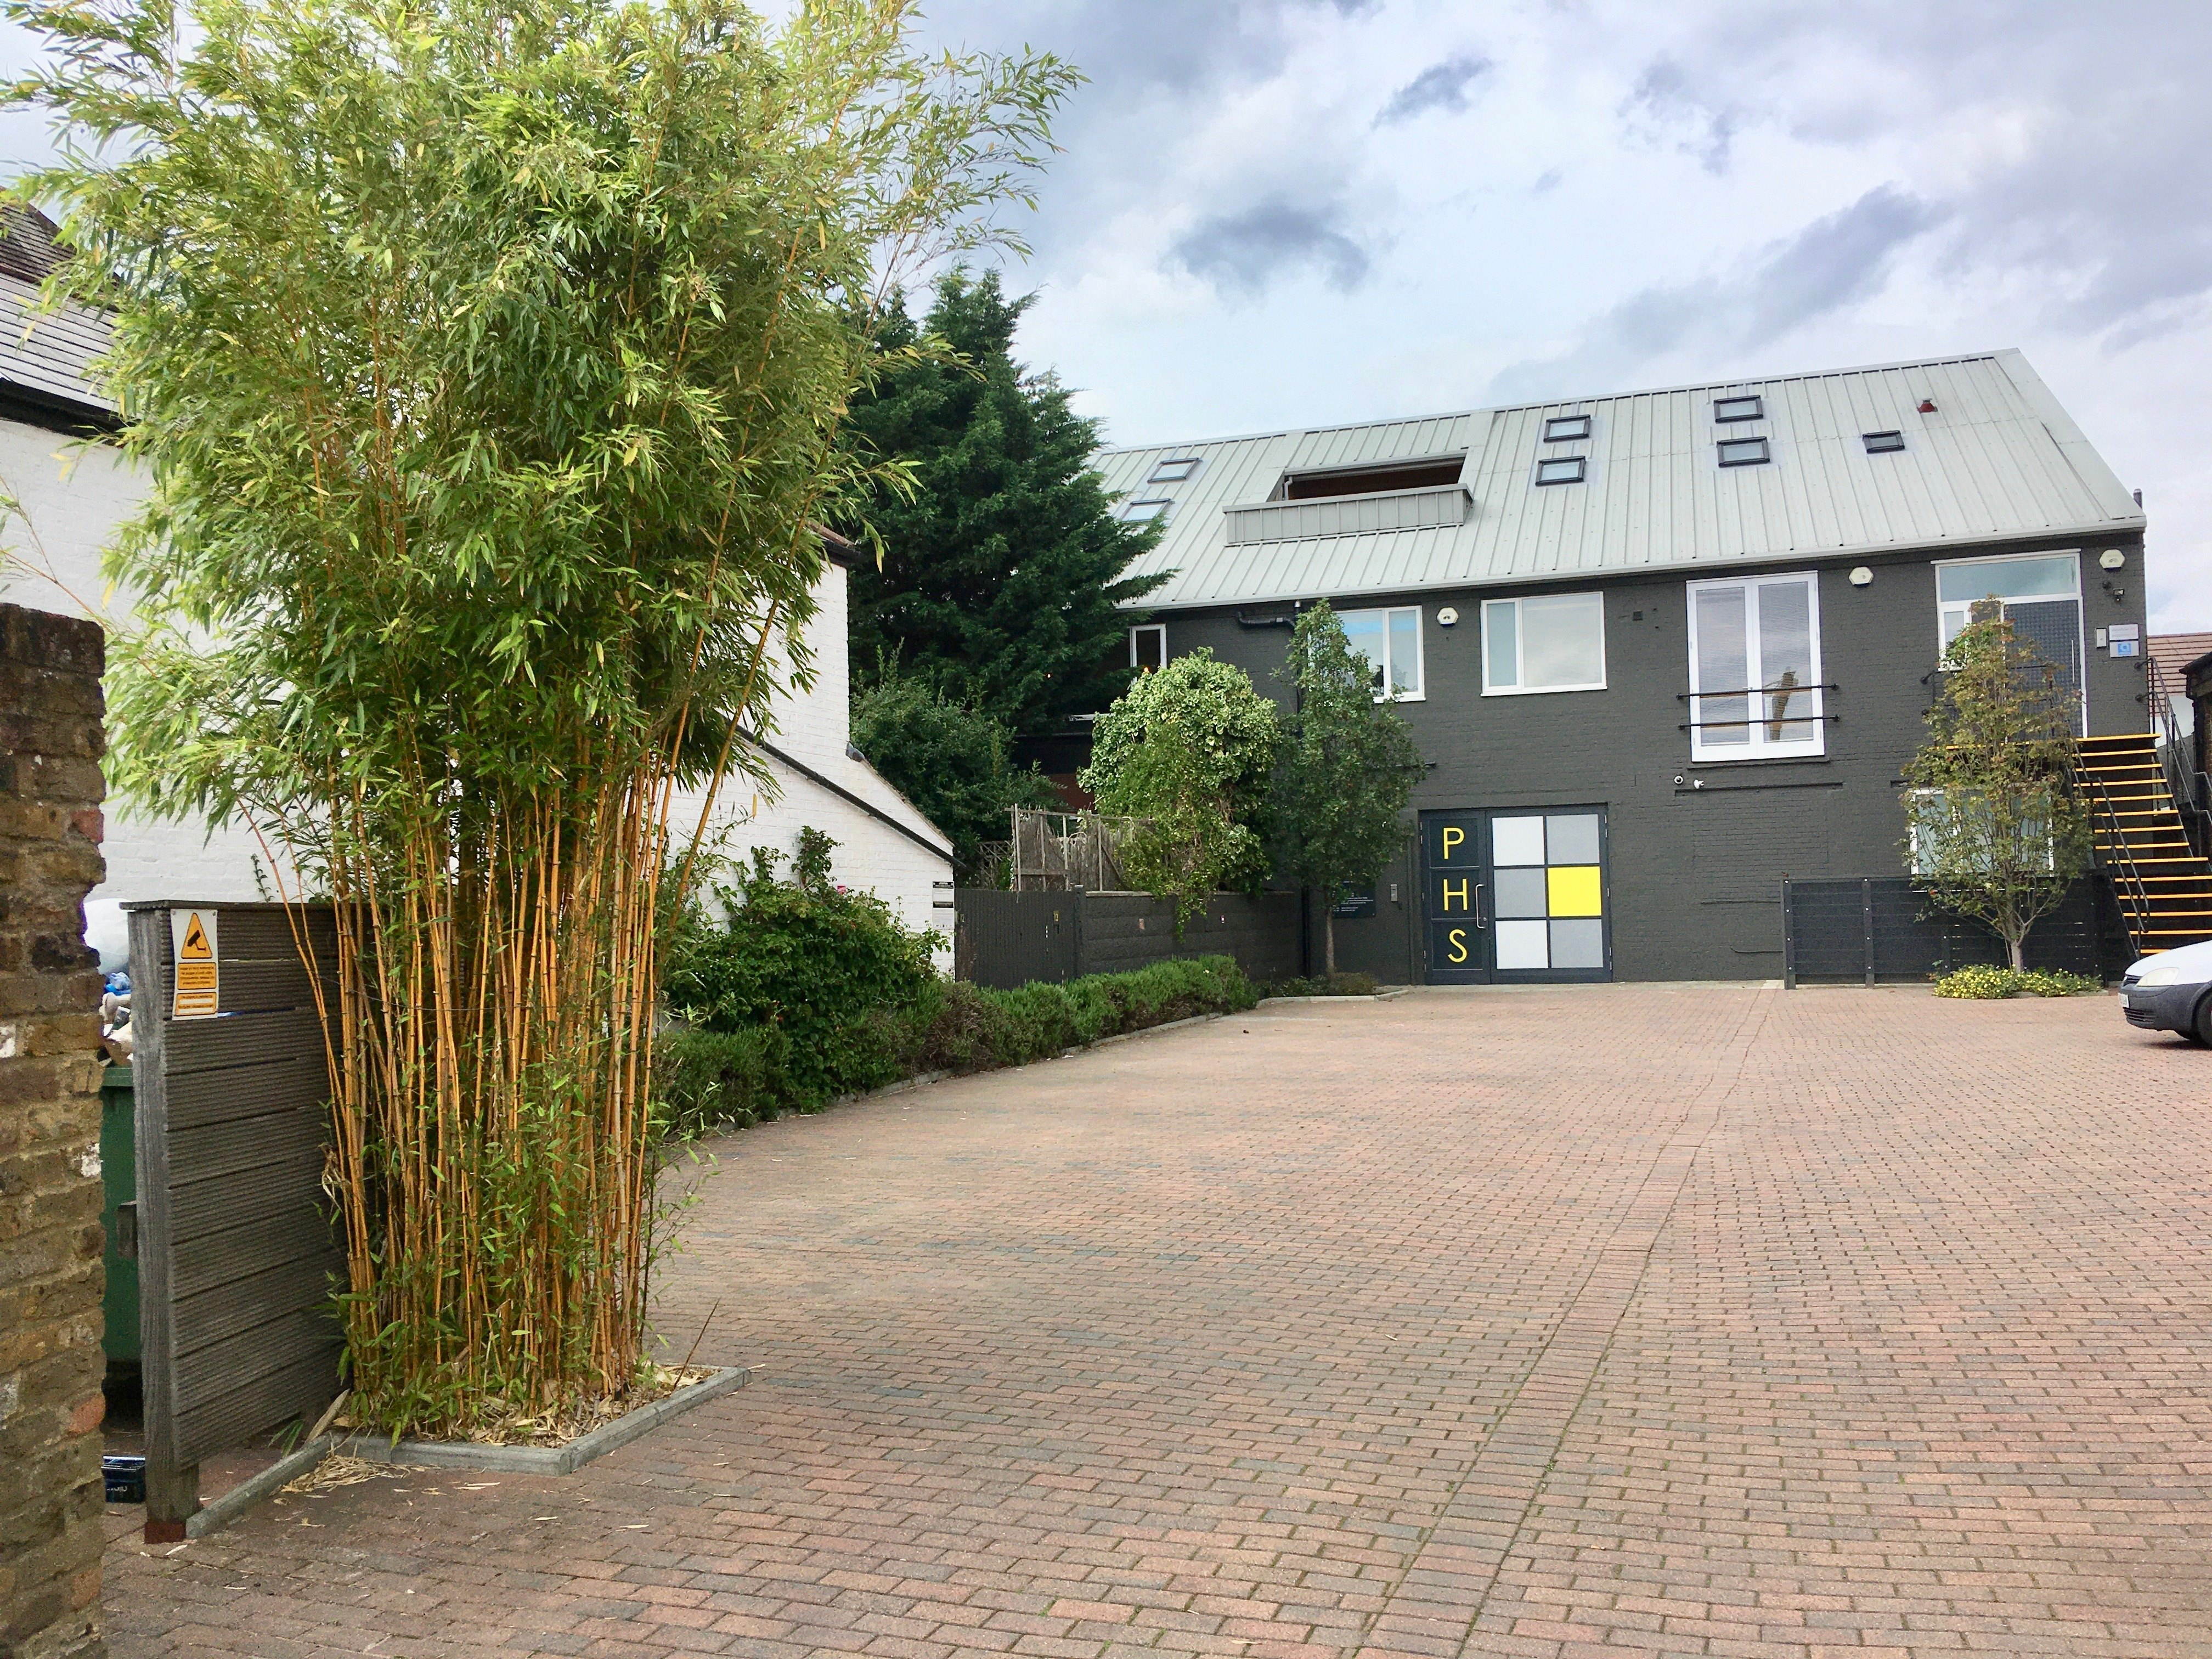 Units 3 & 4B, Parc House Studios, 25-37 Cowleaze Road, Kingston upon Thames, KT2 6DZ